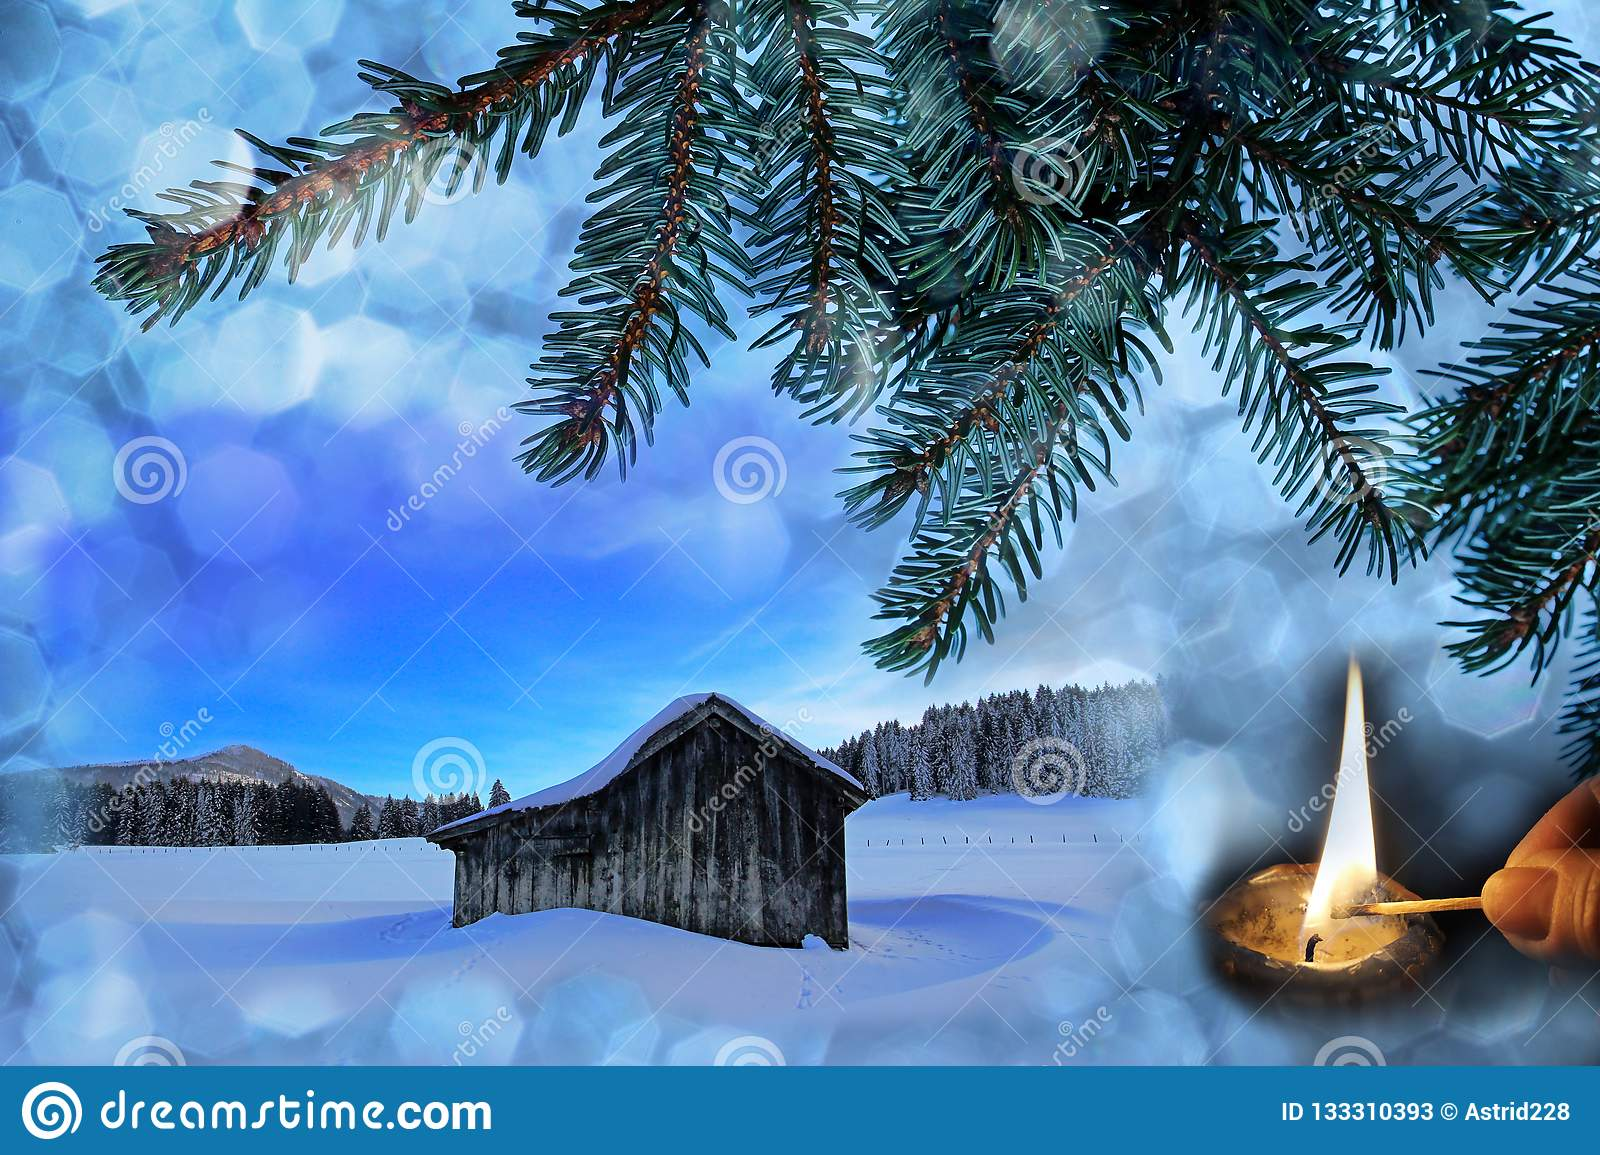 An old wooden hut in the snow with Christmas snowflakes, fir branches and a burning candle